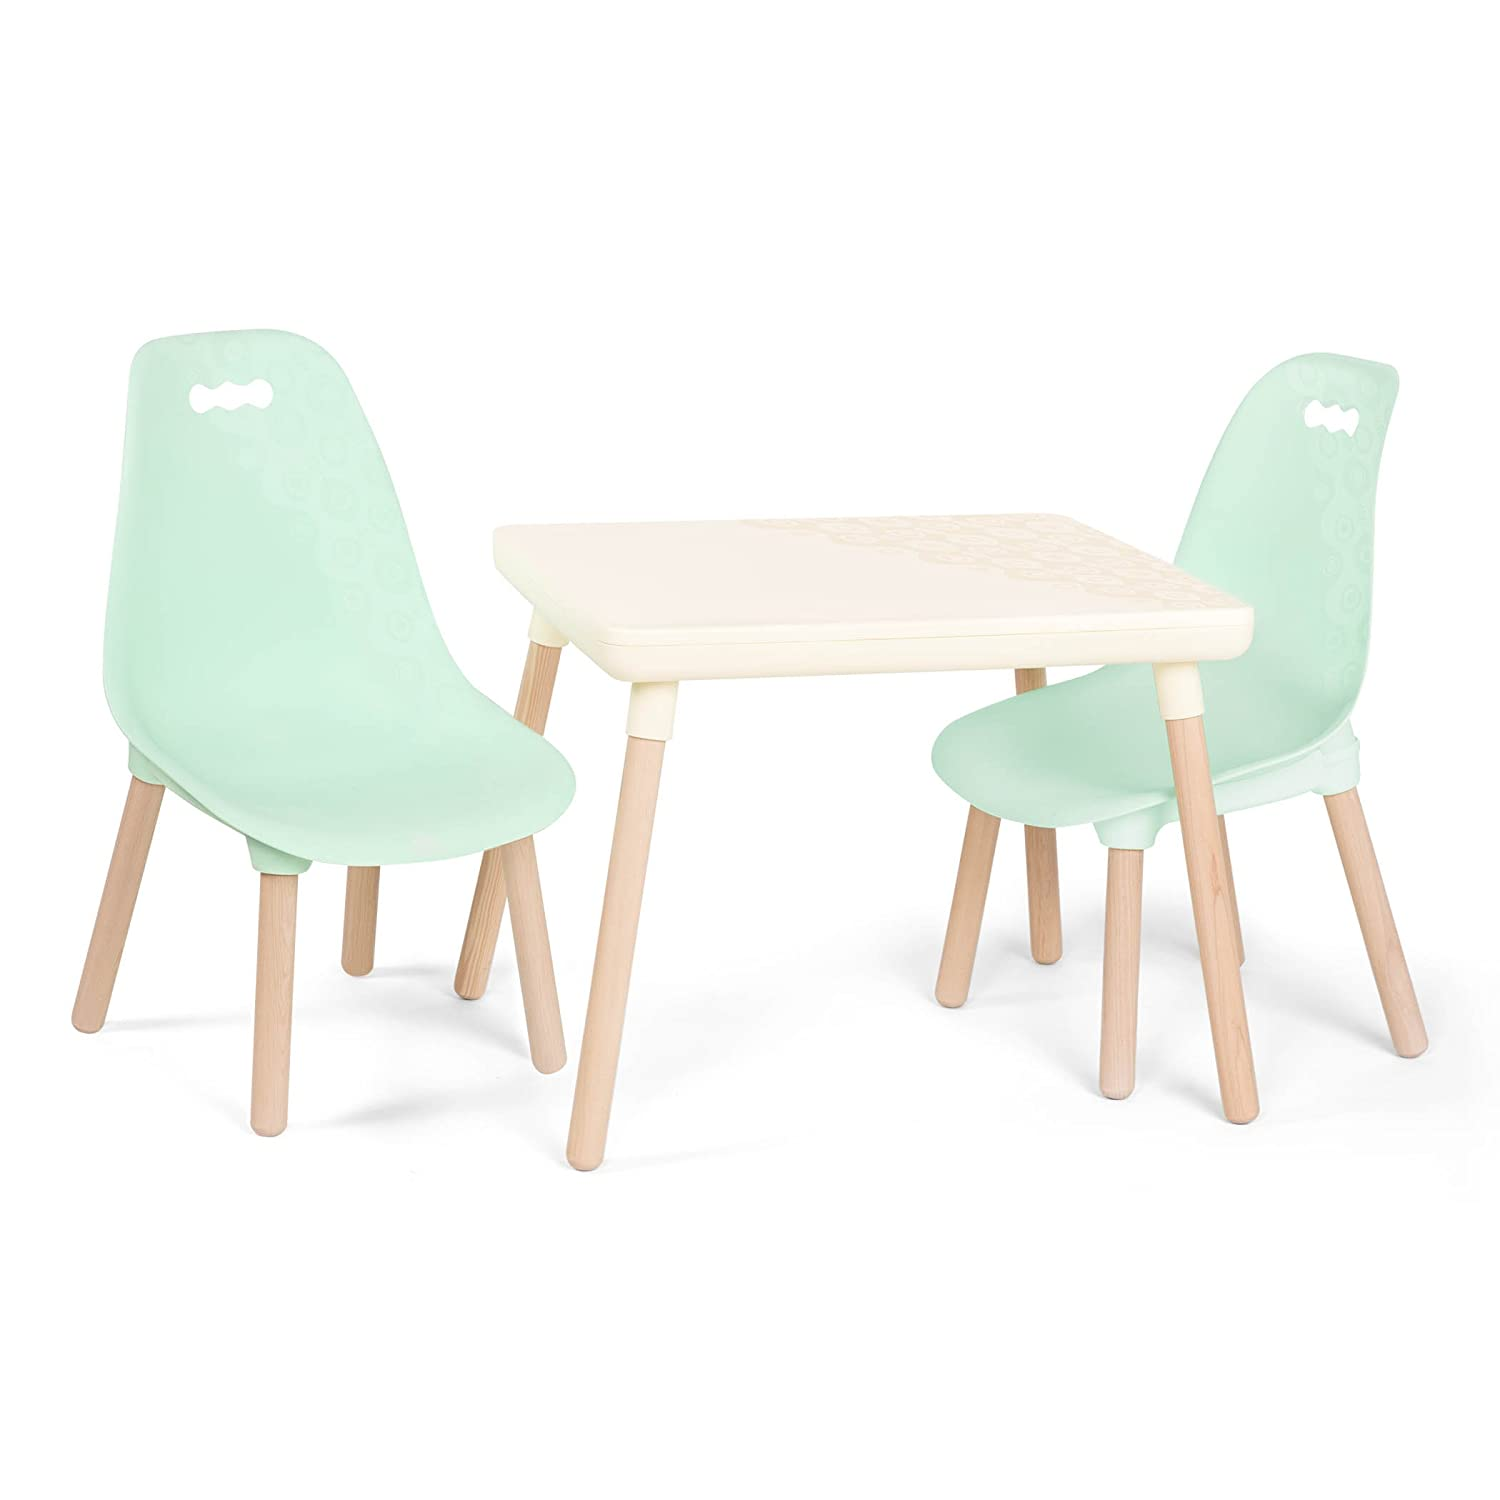 Amazon com b toys kids furniture set 1 craft table 2 kids chairs with natural wooden legs ivory and mint toys games